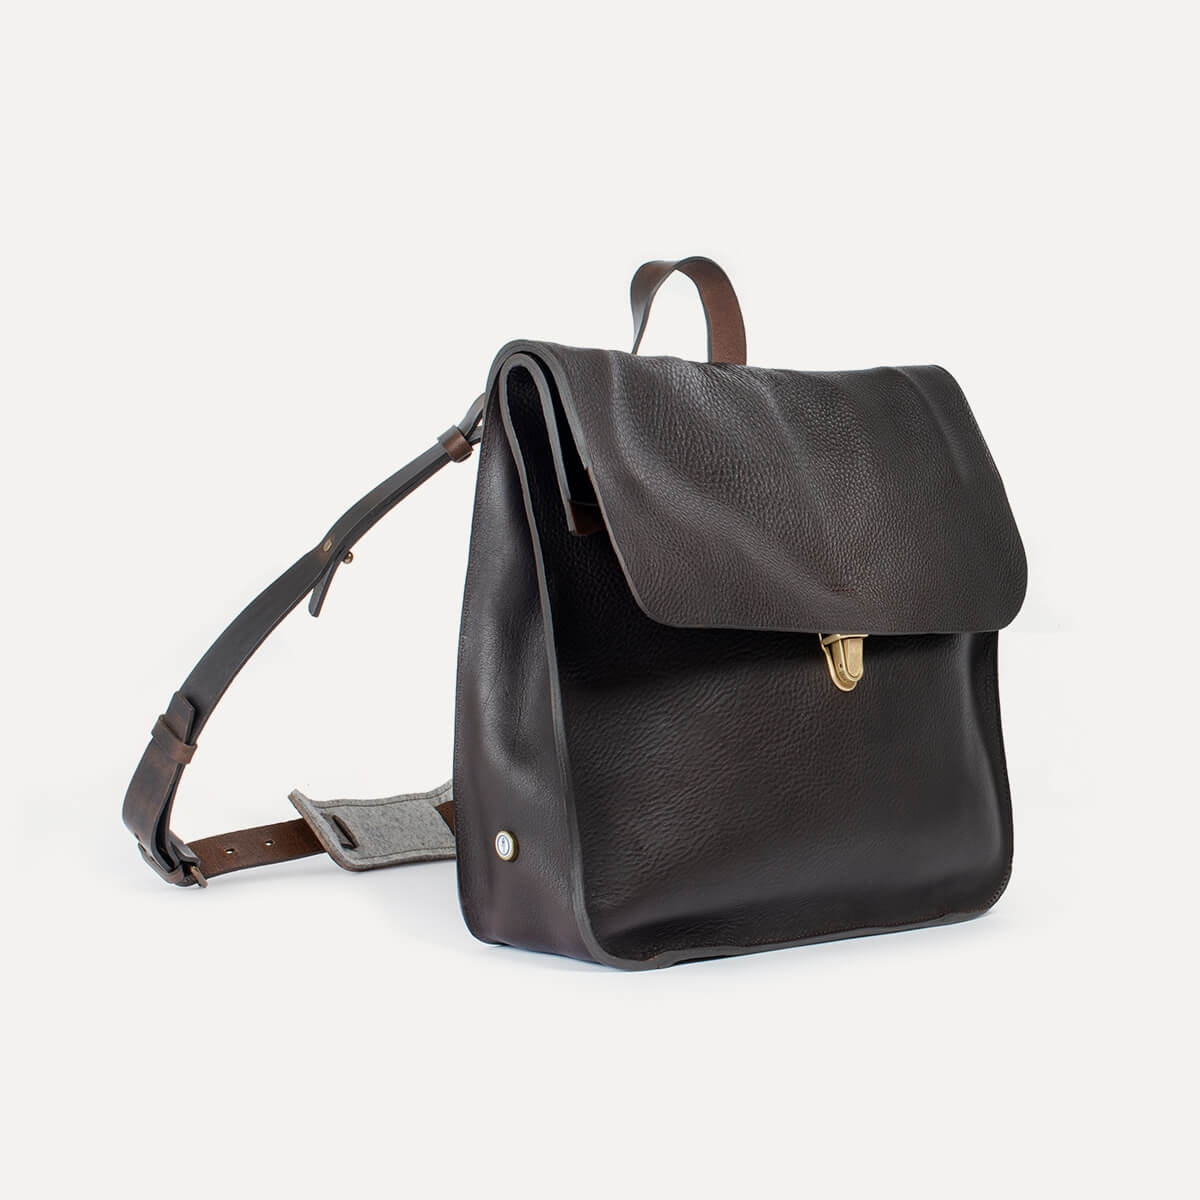 Chico Leather Satchel - Dark Brown / E Pure (image n°4)